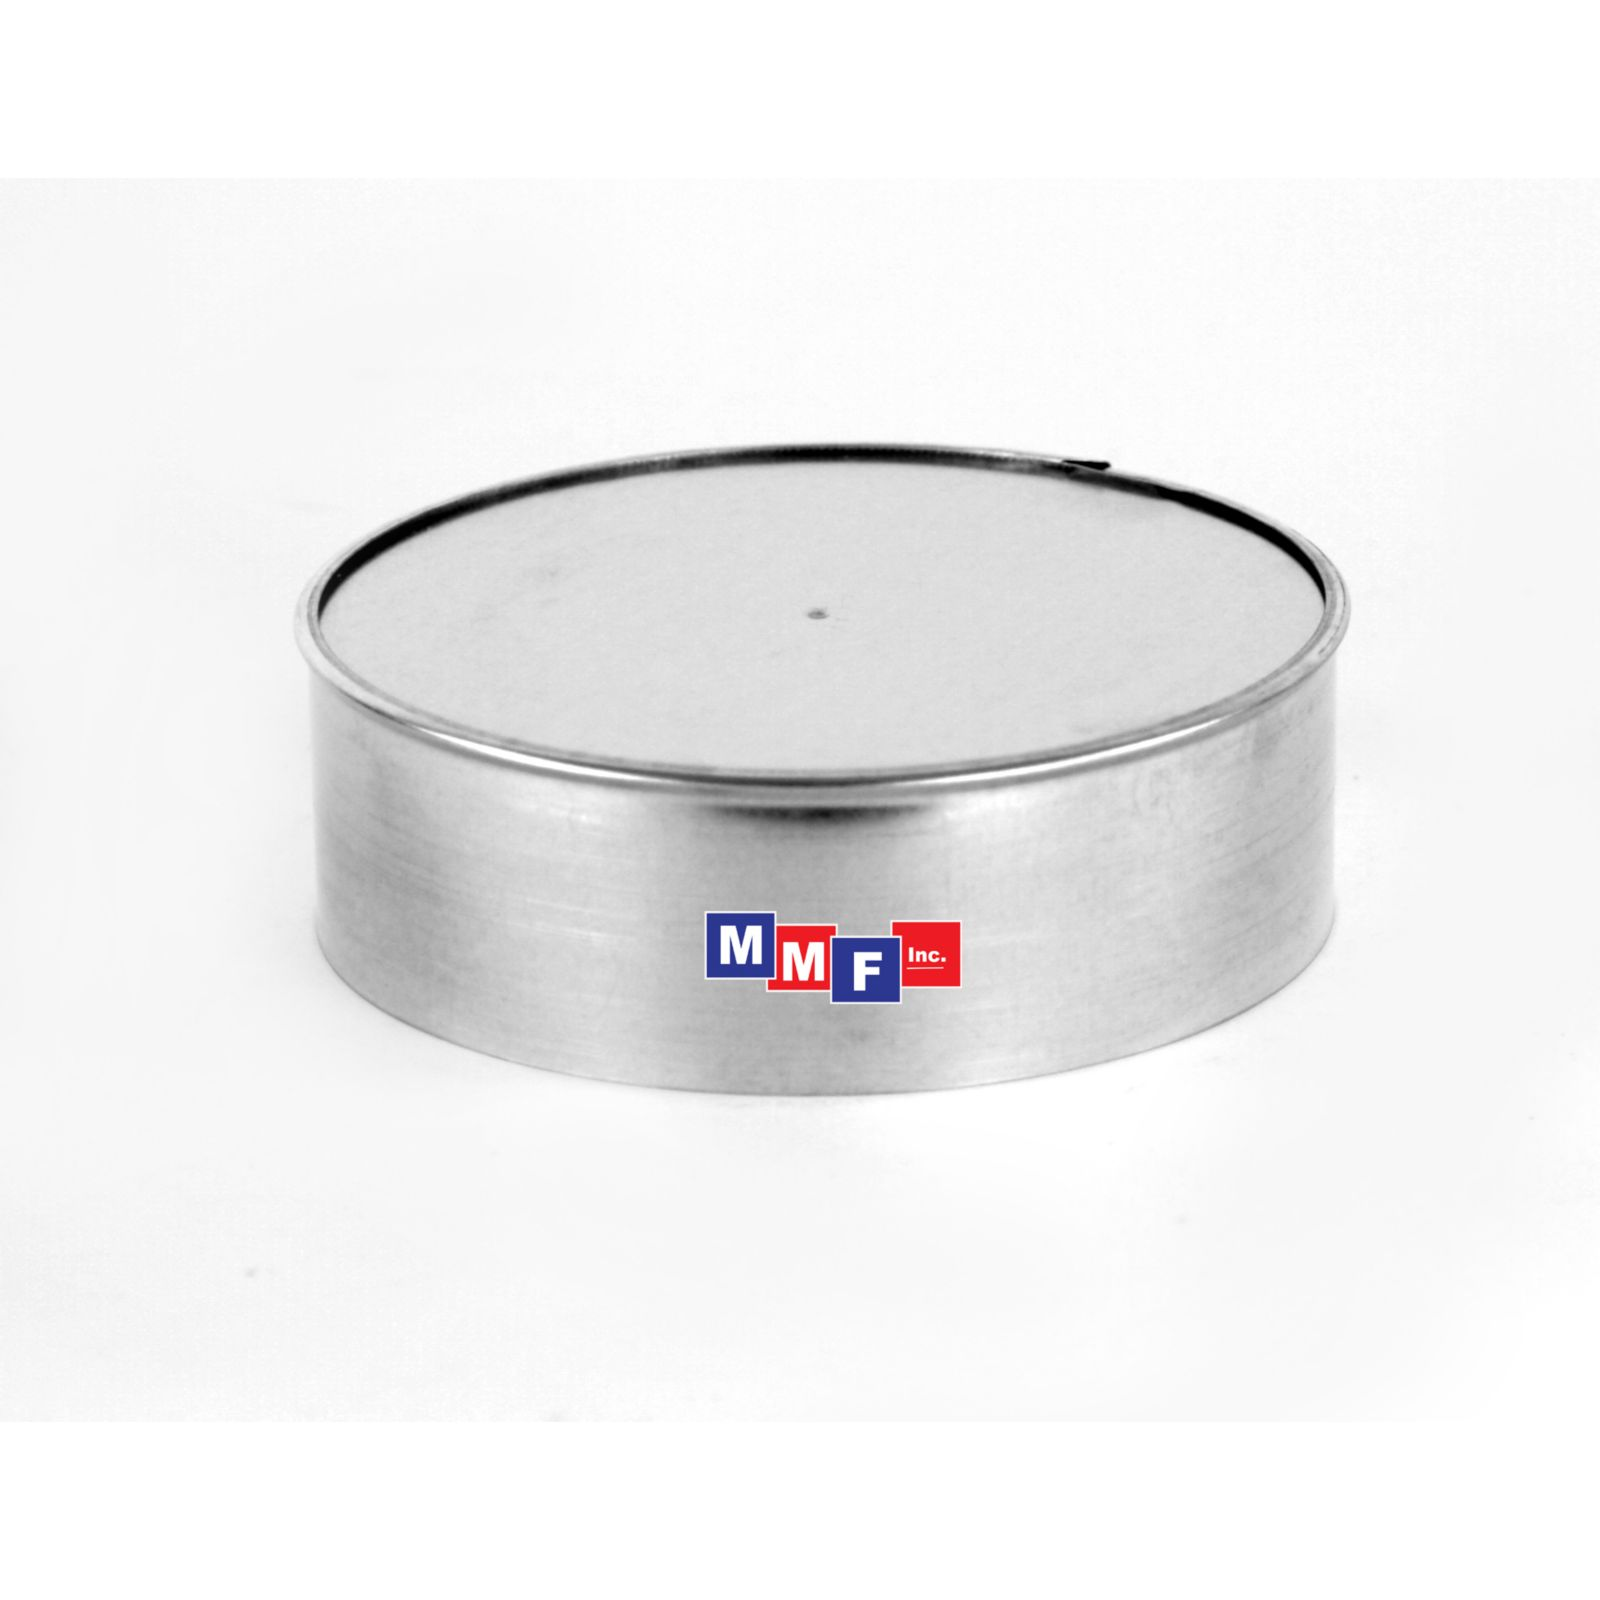 "Modular Metal ECI06 - End Cap - 26 Gauge - 2"" High 06"" Round - Galvanized"